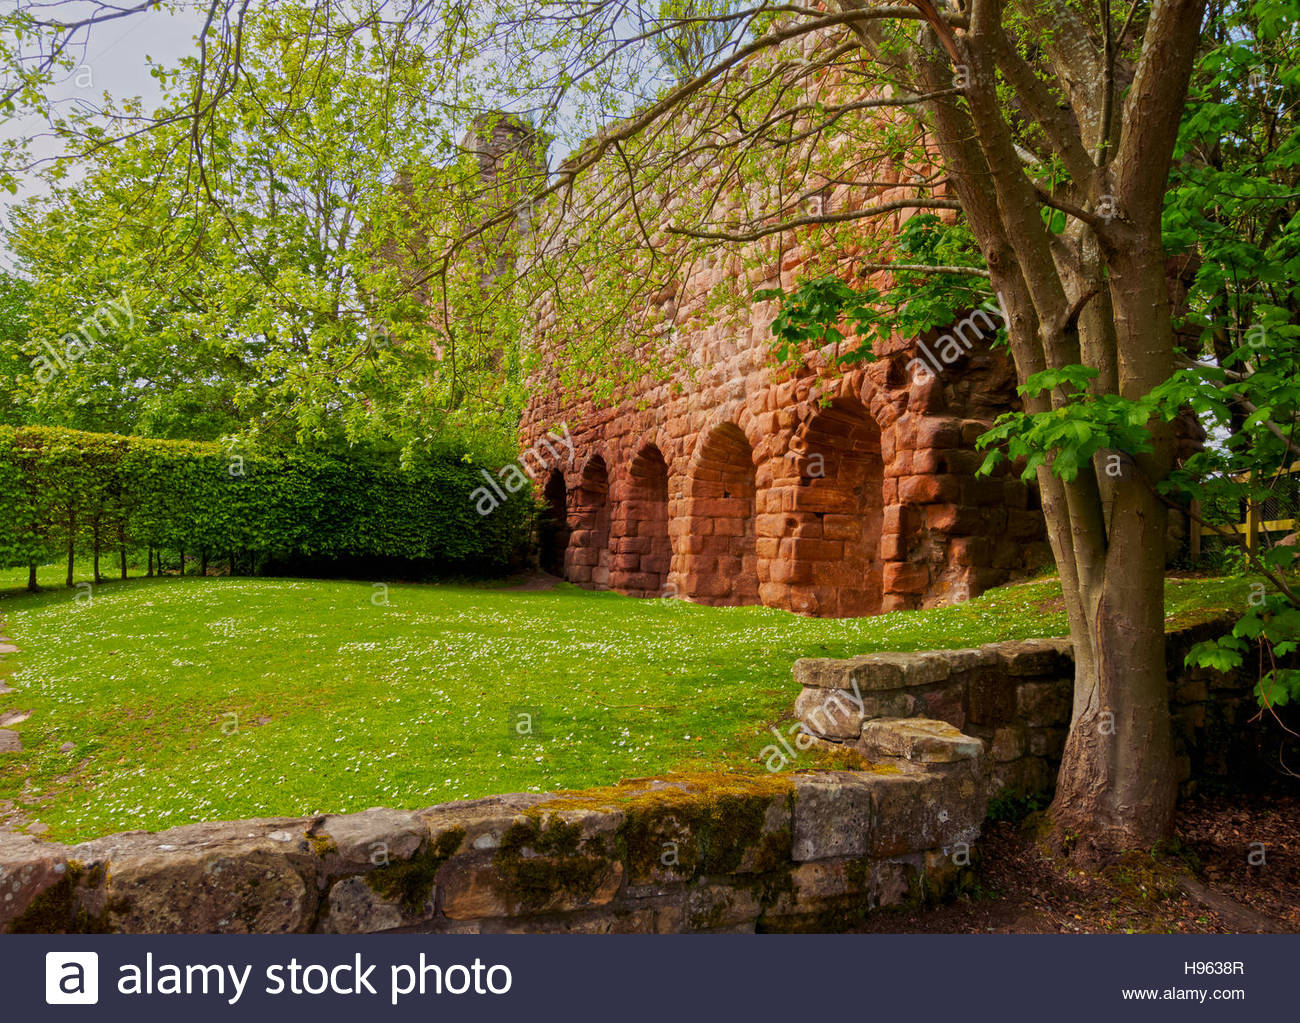 UK, Scotland, Midothian, Edinburgh Area, Roslin, View of the Rosslyn Castle. - Stock Image